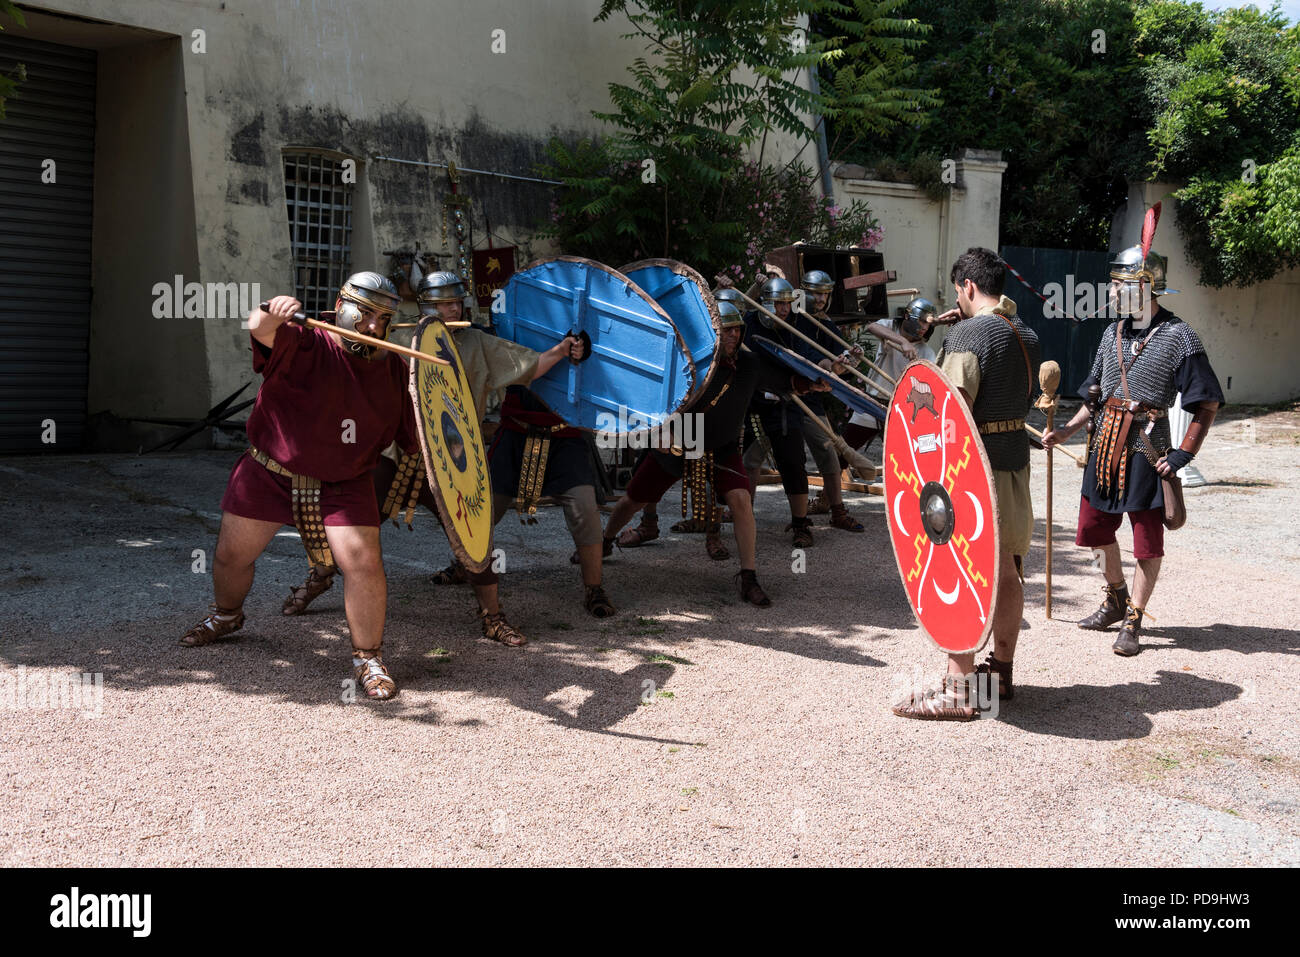 A  group of Roman soldiers demonstrating their battle training during a history event weekend held within the walls of Ajaccio citadel in Ajaccio on C - Stock Image